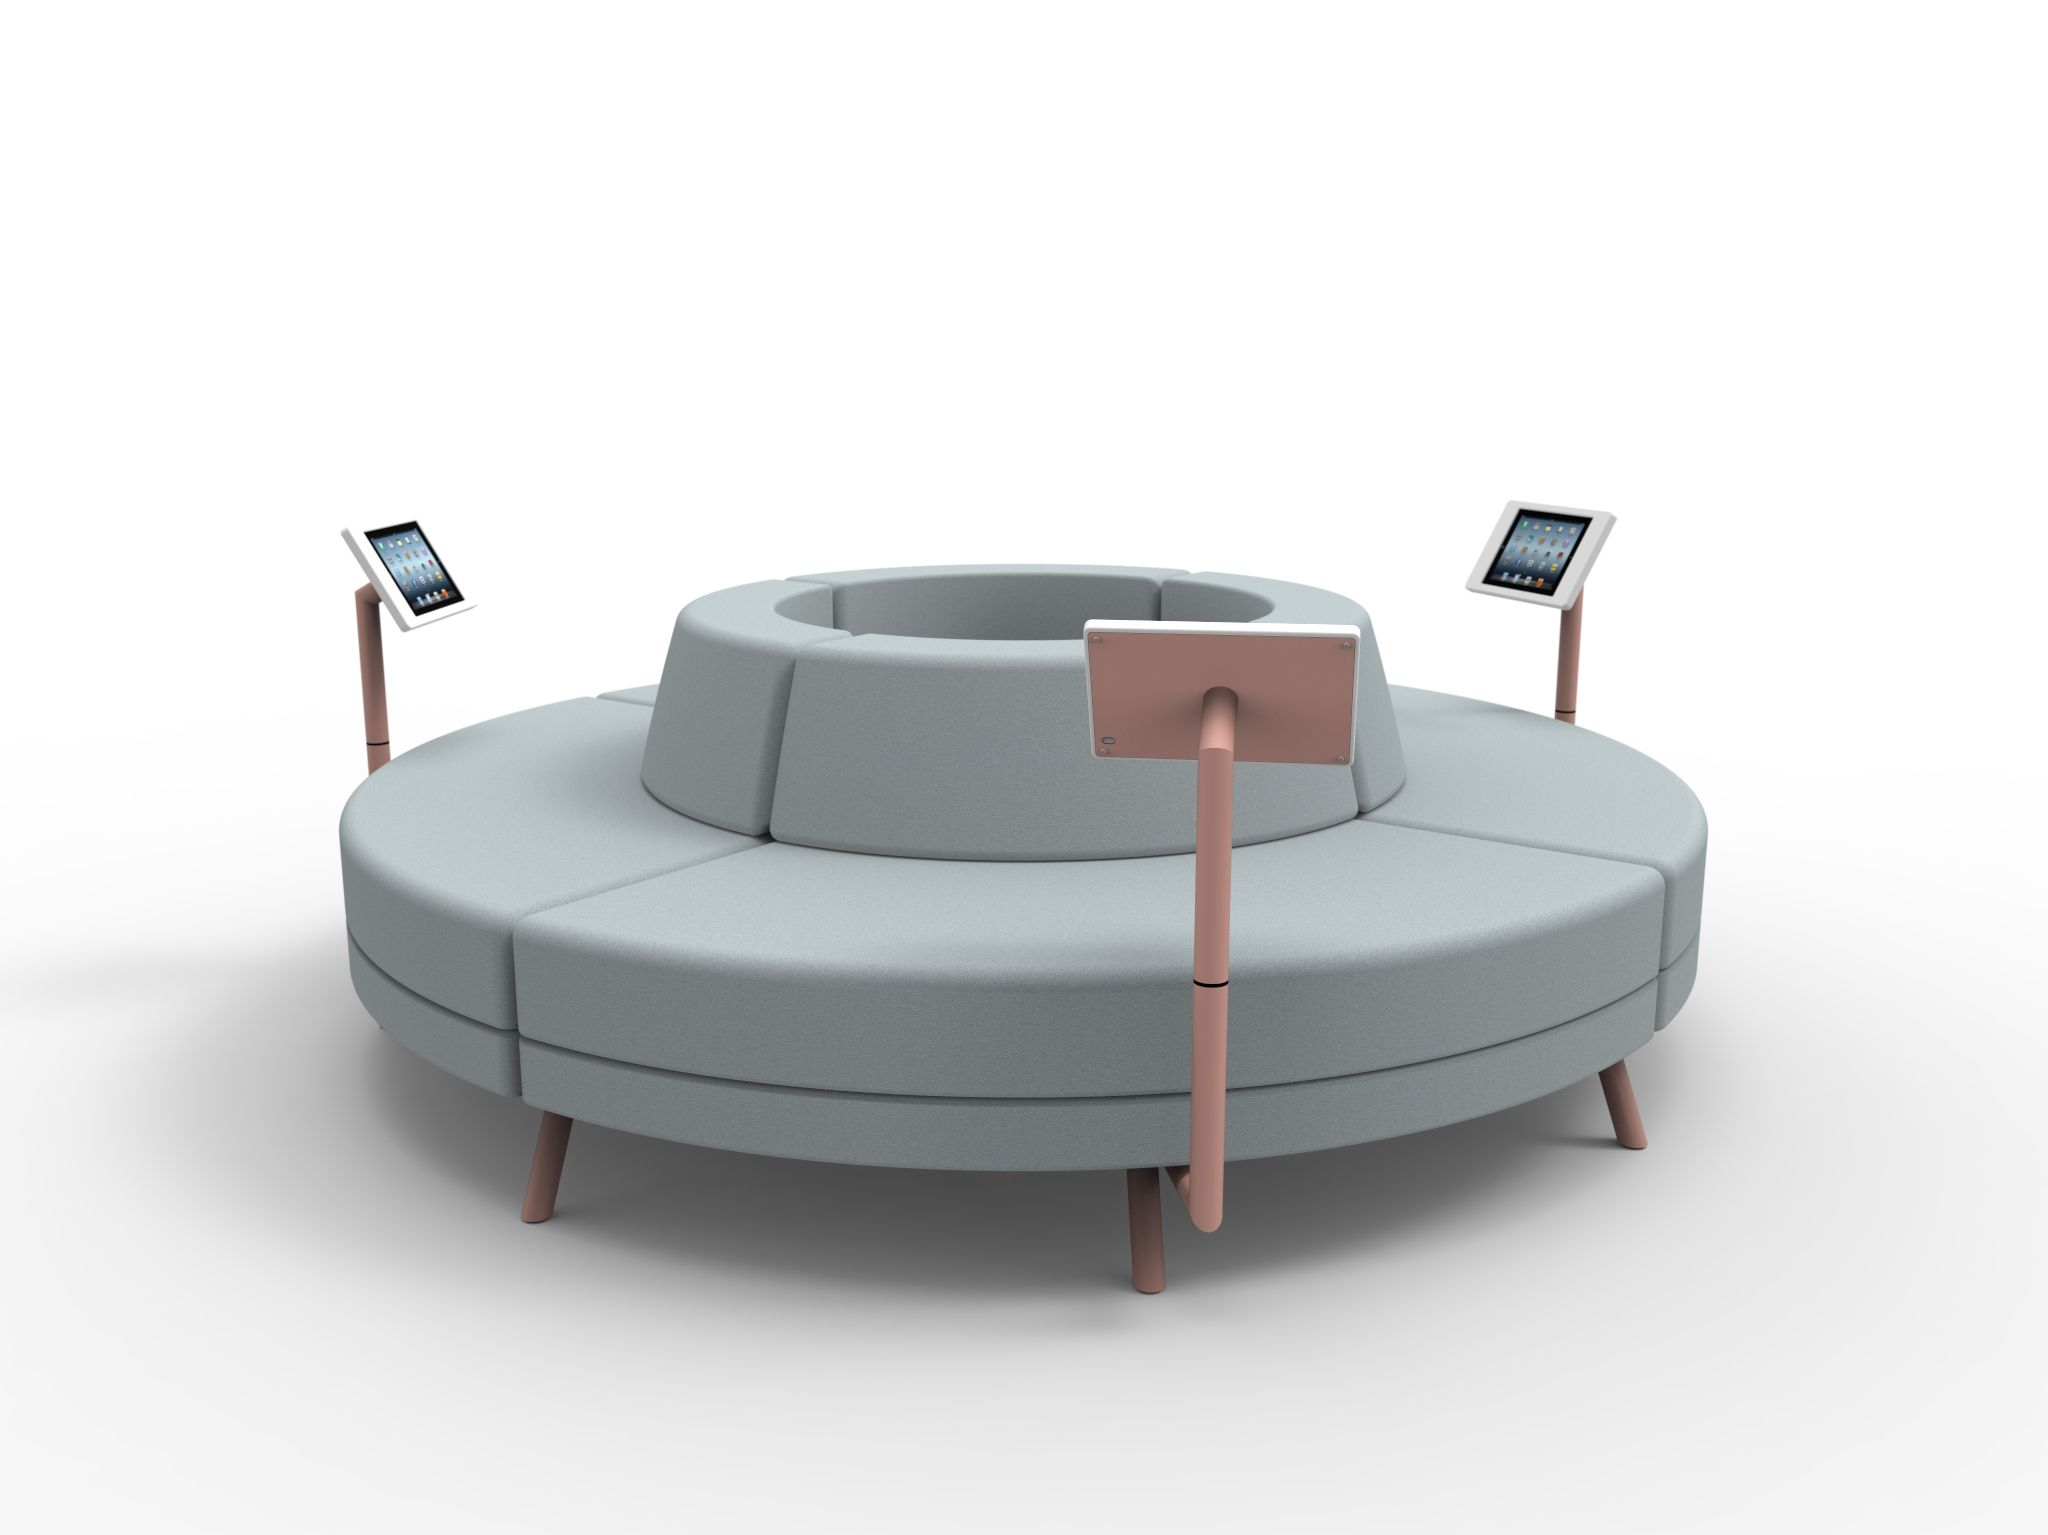 The Amazing Circular Sofa The Amazing Circular Sofa Goodworksfurniture Wdbceut Round Sofa Round Couch Sofa Design